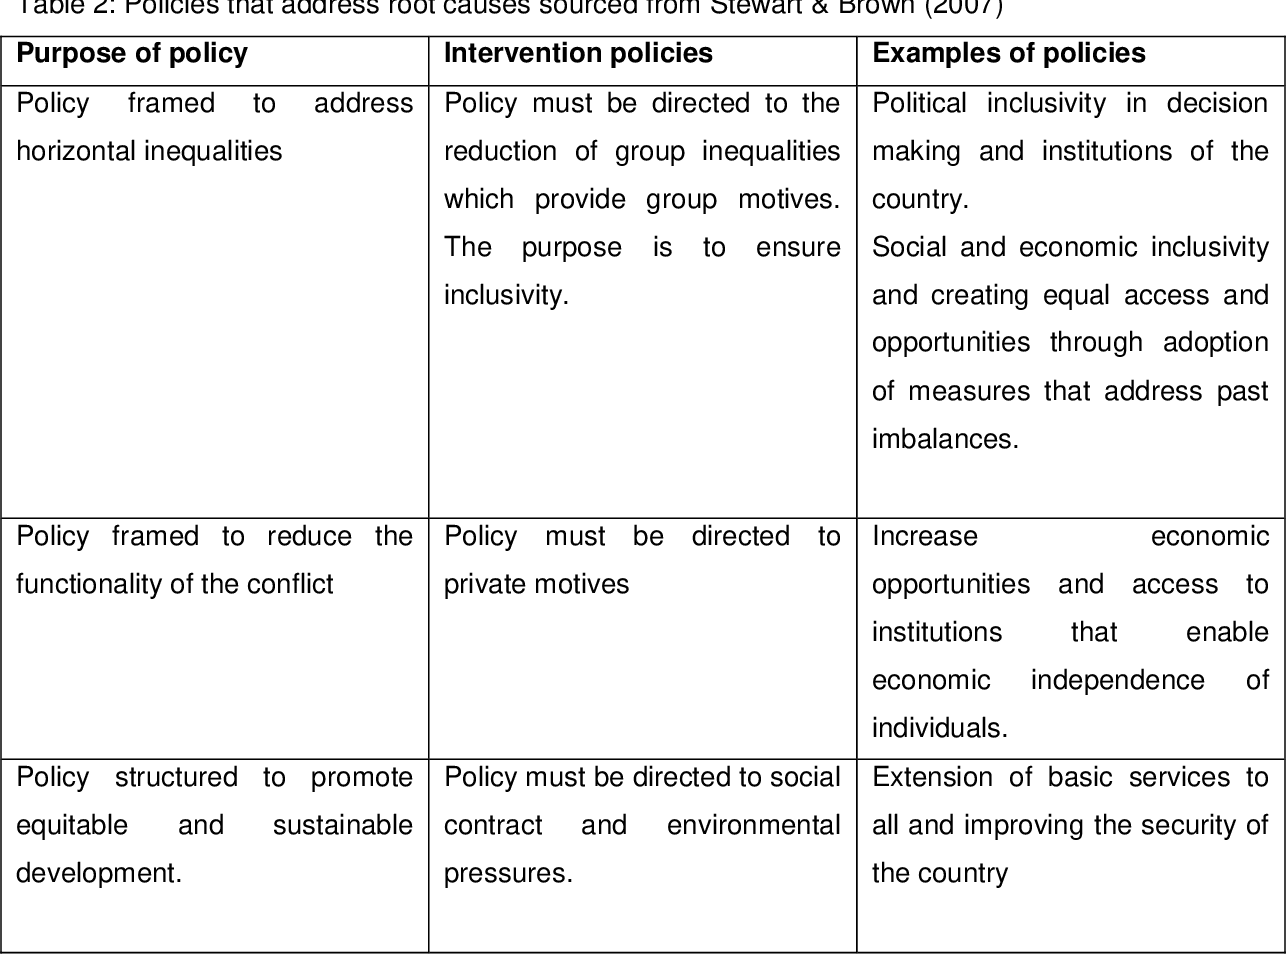 Table 2 from SOUTH AFRICA'S POLICY ON CIVILIAN PARTICIPATION